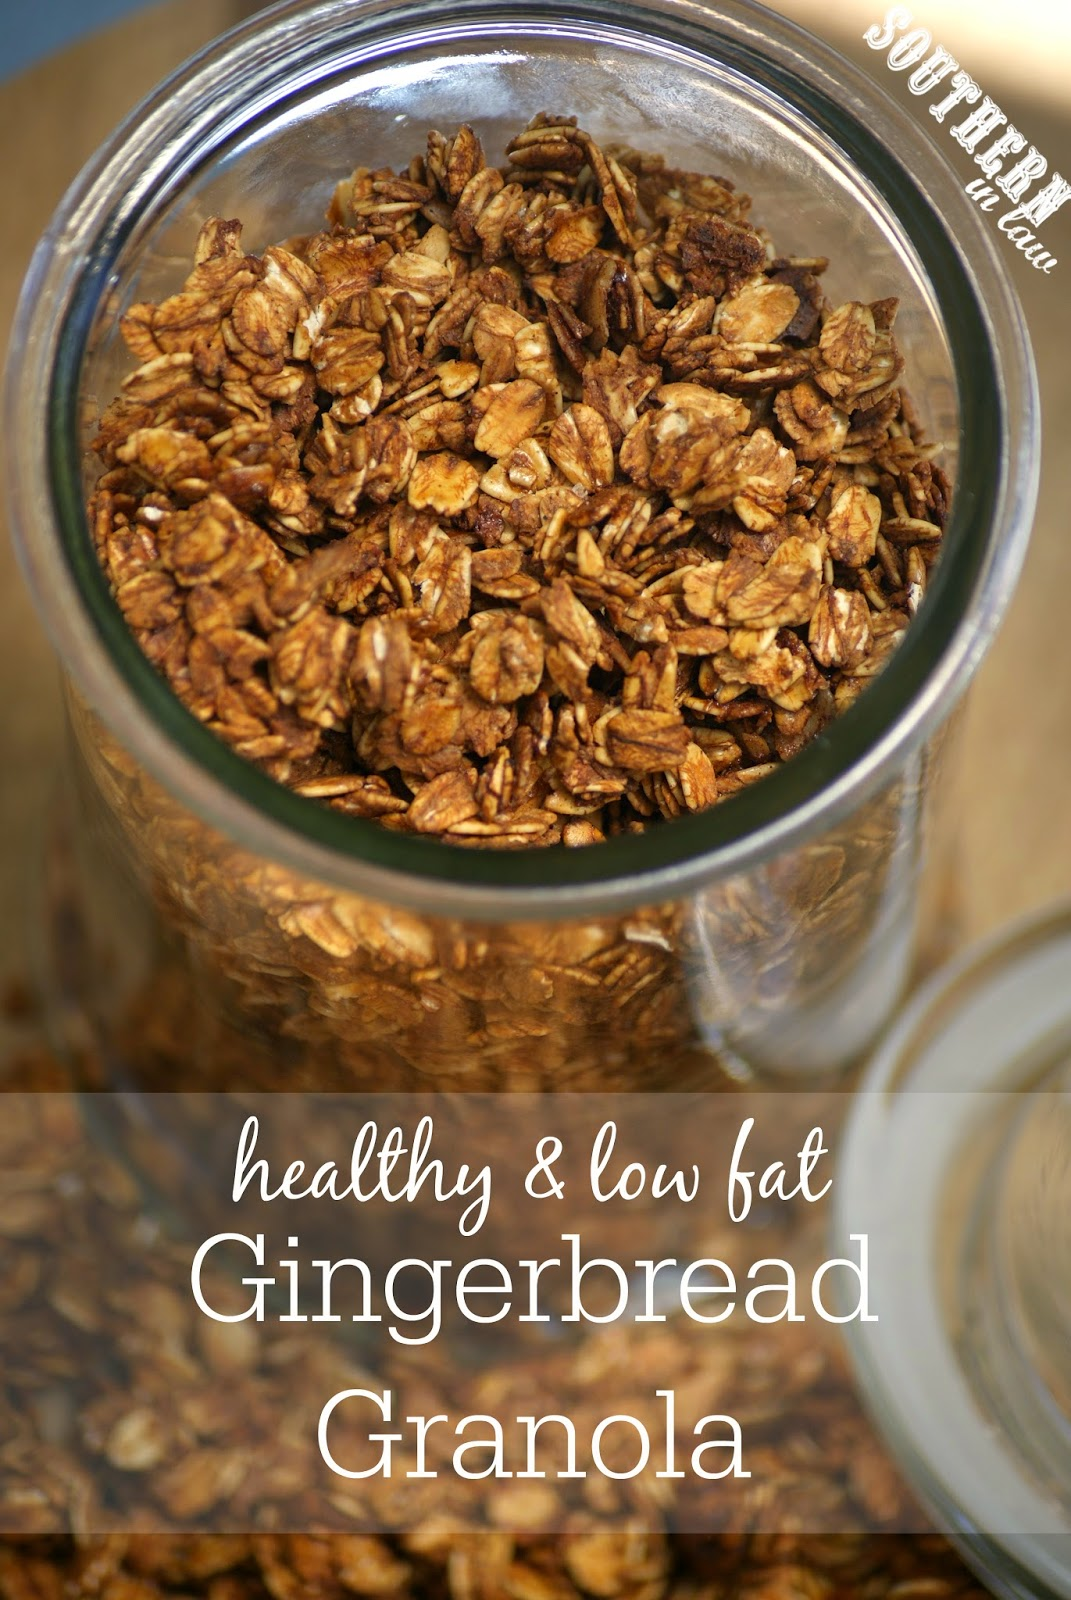 Healthy Gingerbread Granola Recipe - low fat, gluten free, healthy, clean eating friendly, christmas gift ideas